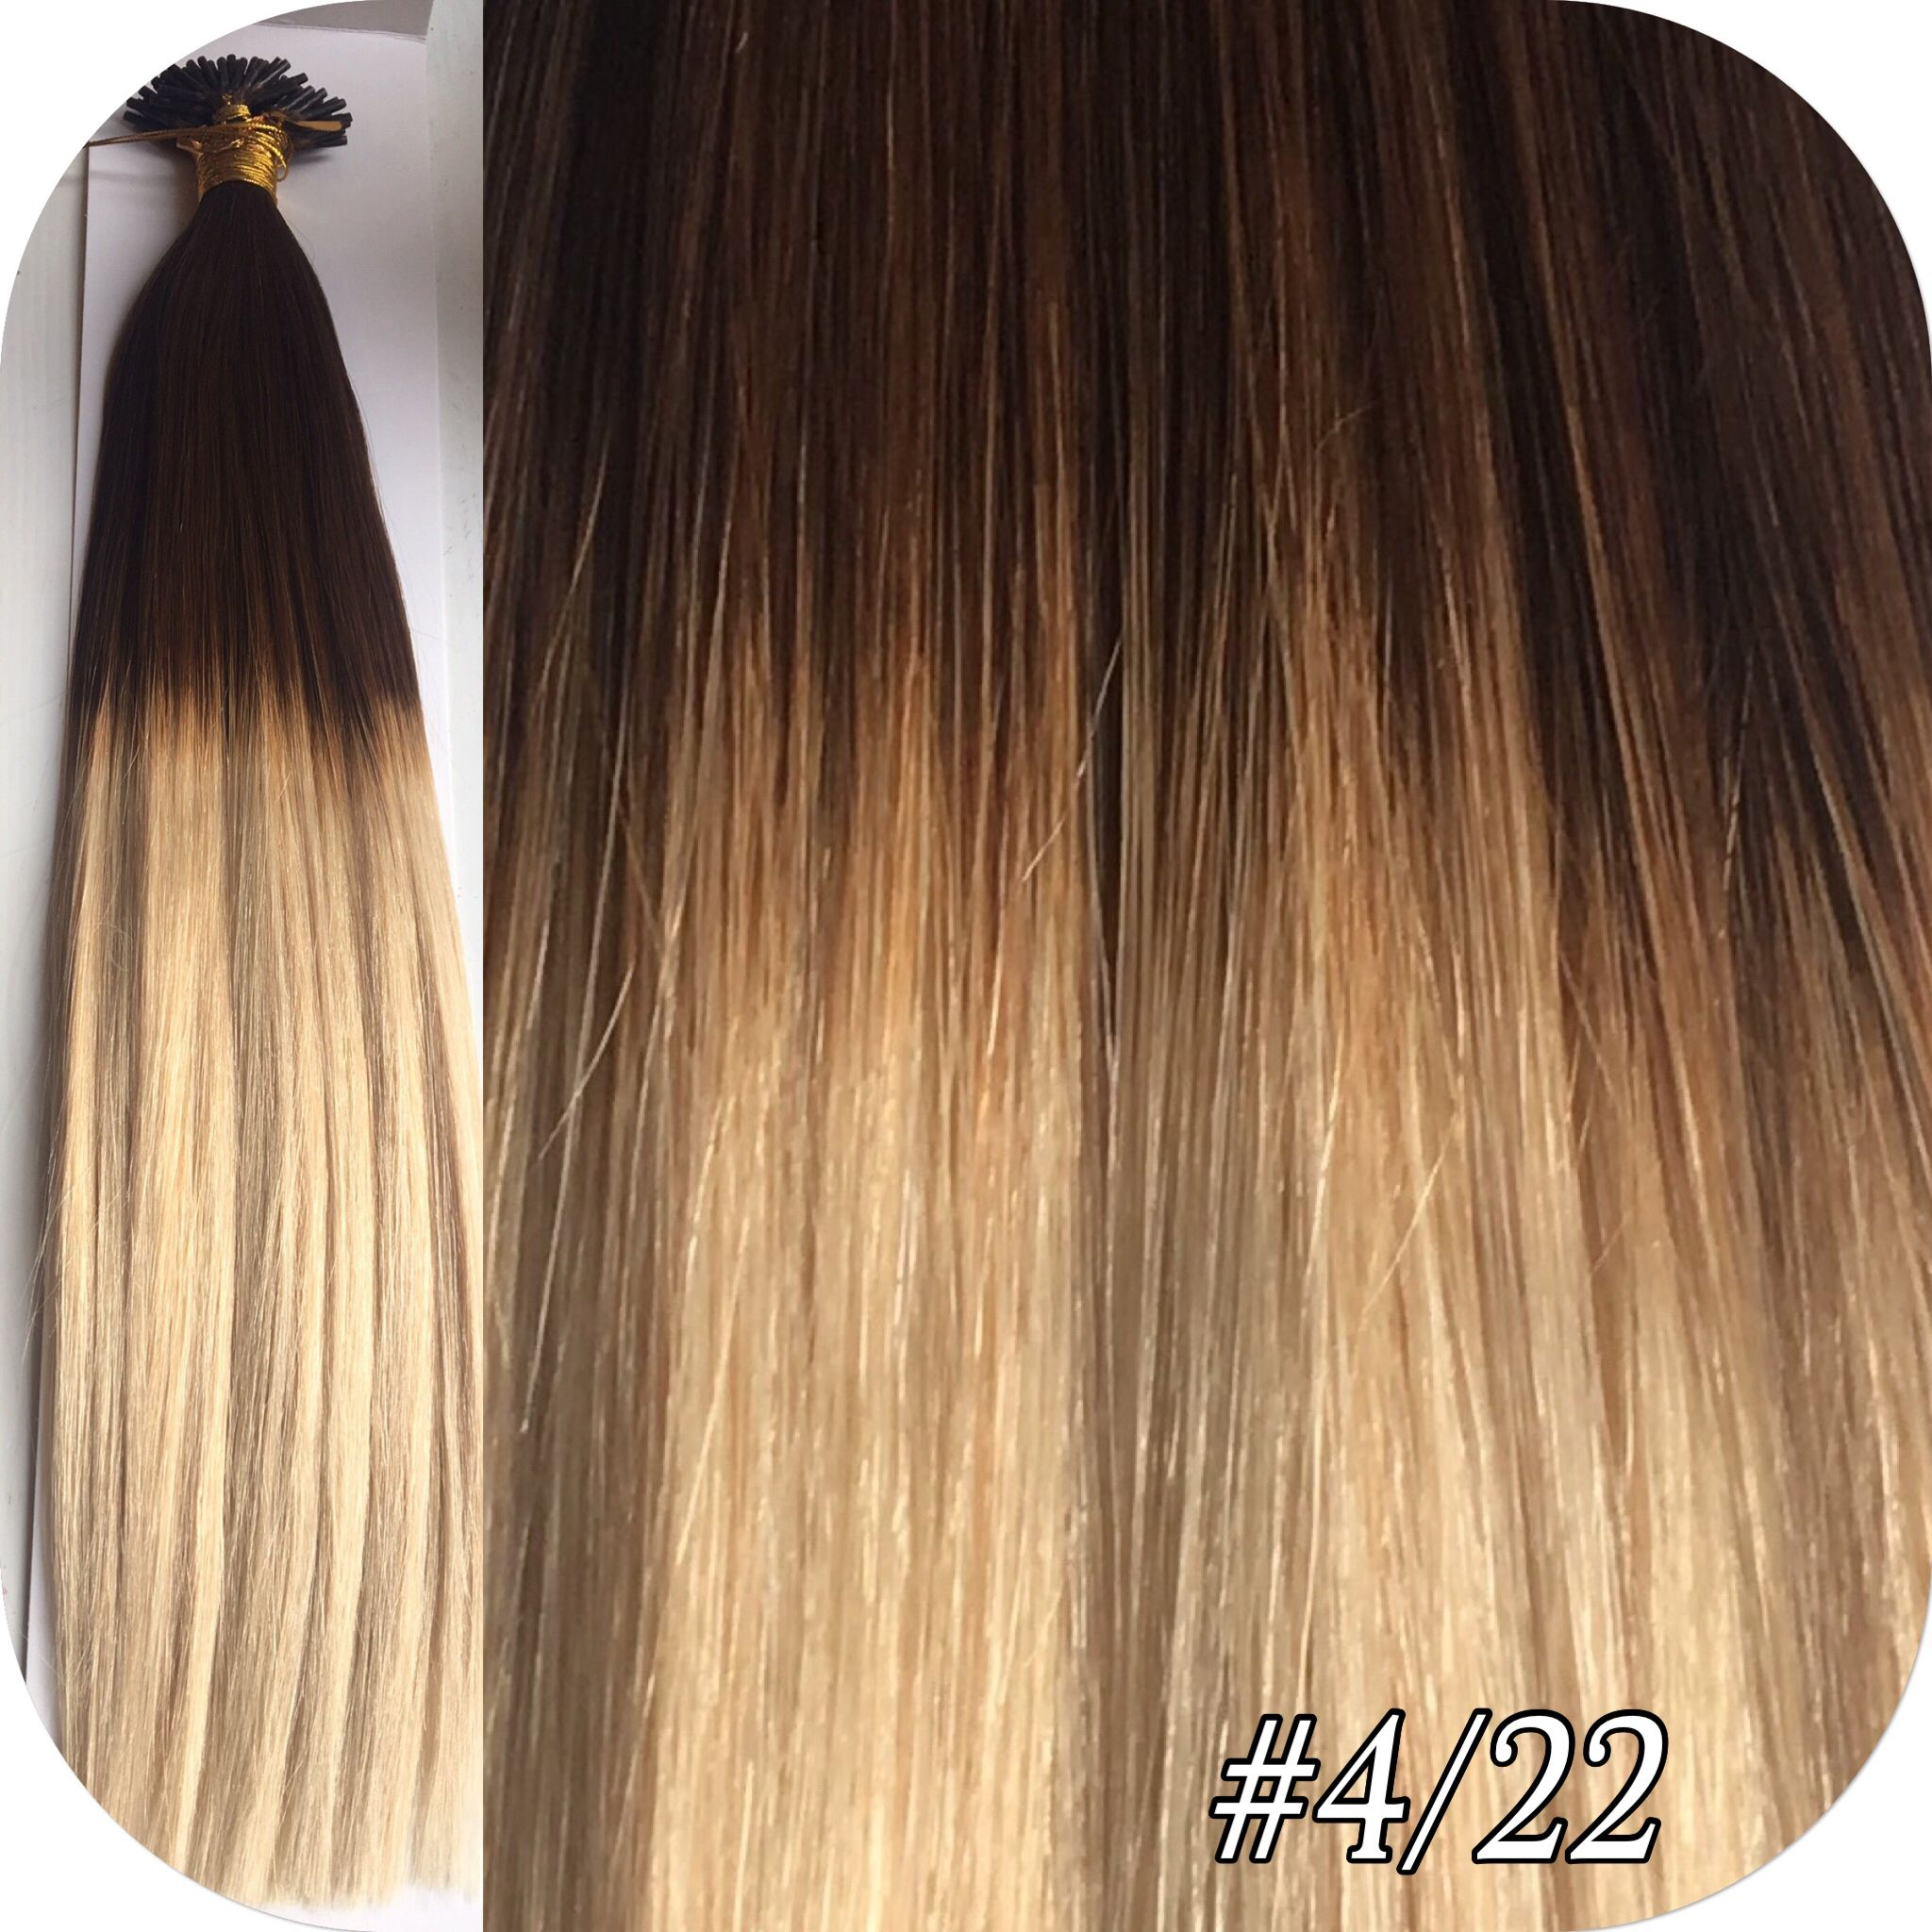 When Are You Planning To Purchase A Natural Looking Hair Extensions